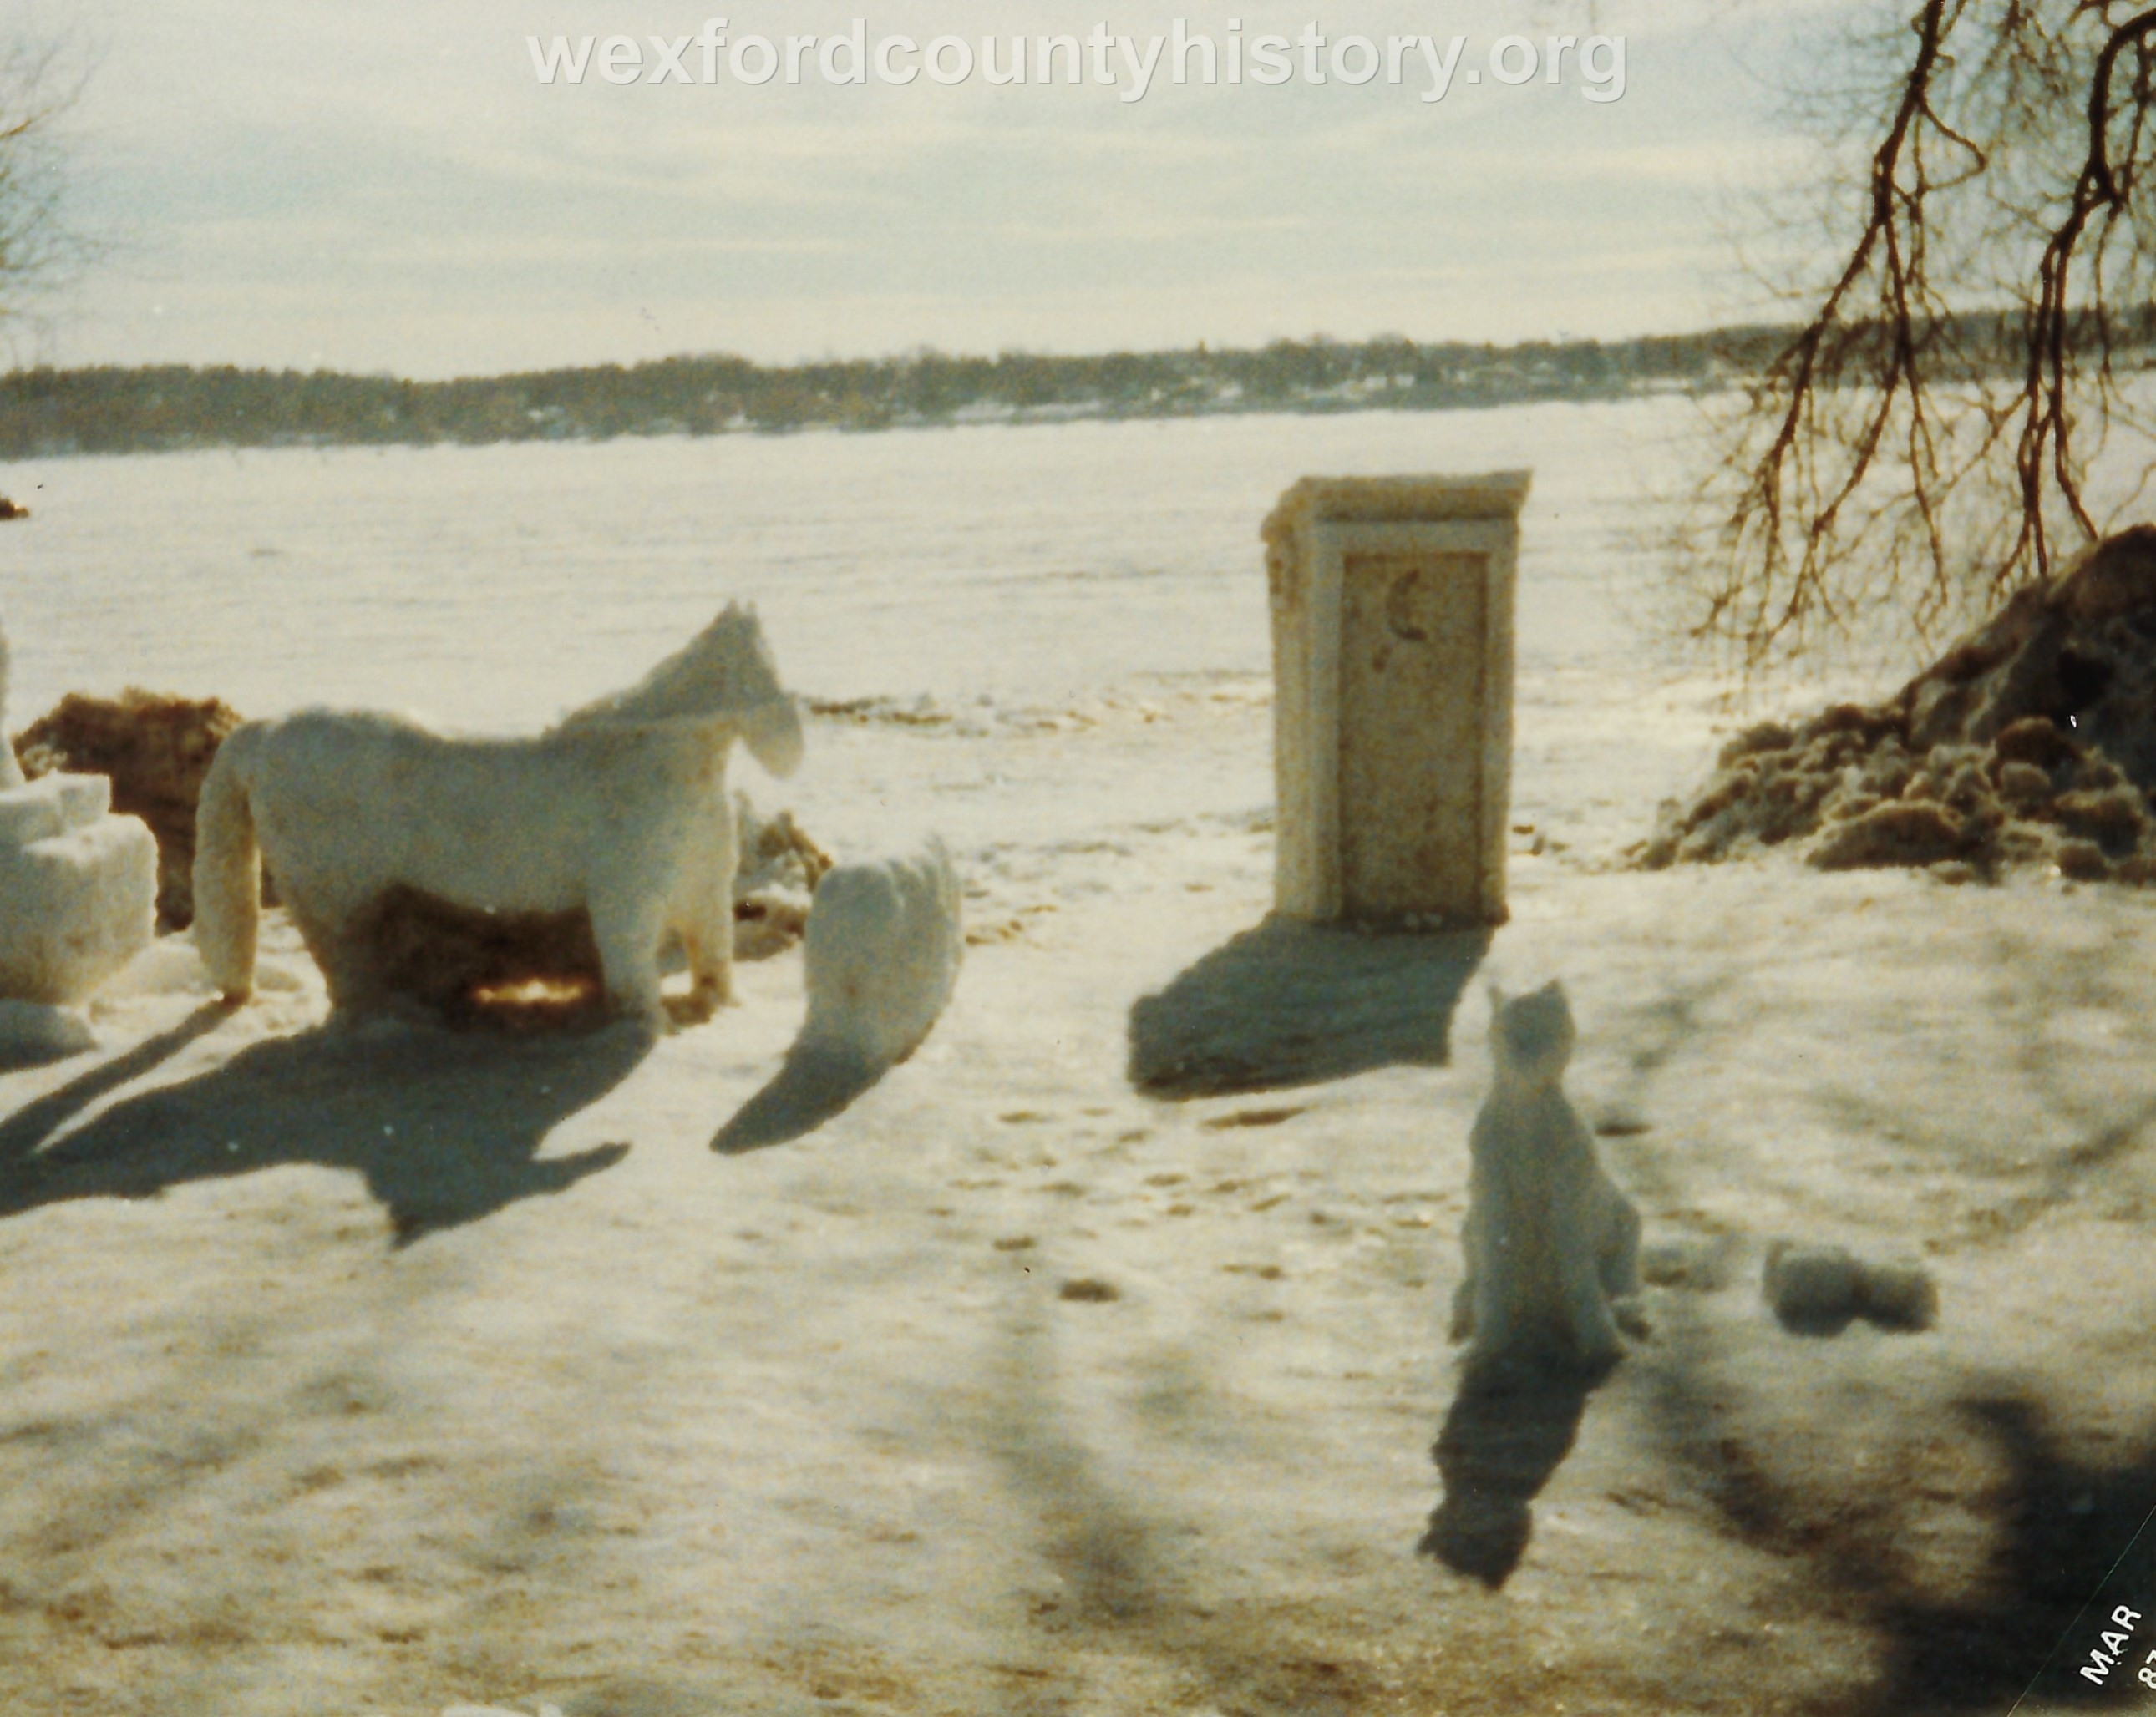 Cadillac-Recreation-Ice-Sculptures-On-Lake-Cadillac-For-Snowmobile-Festival-2